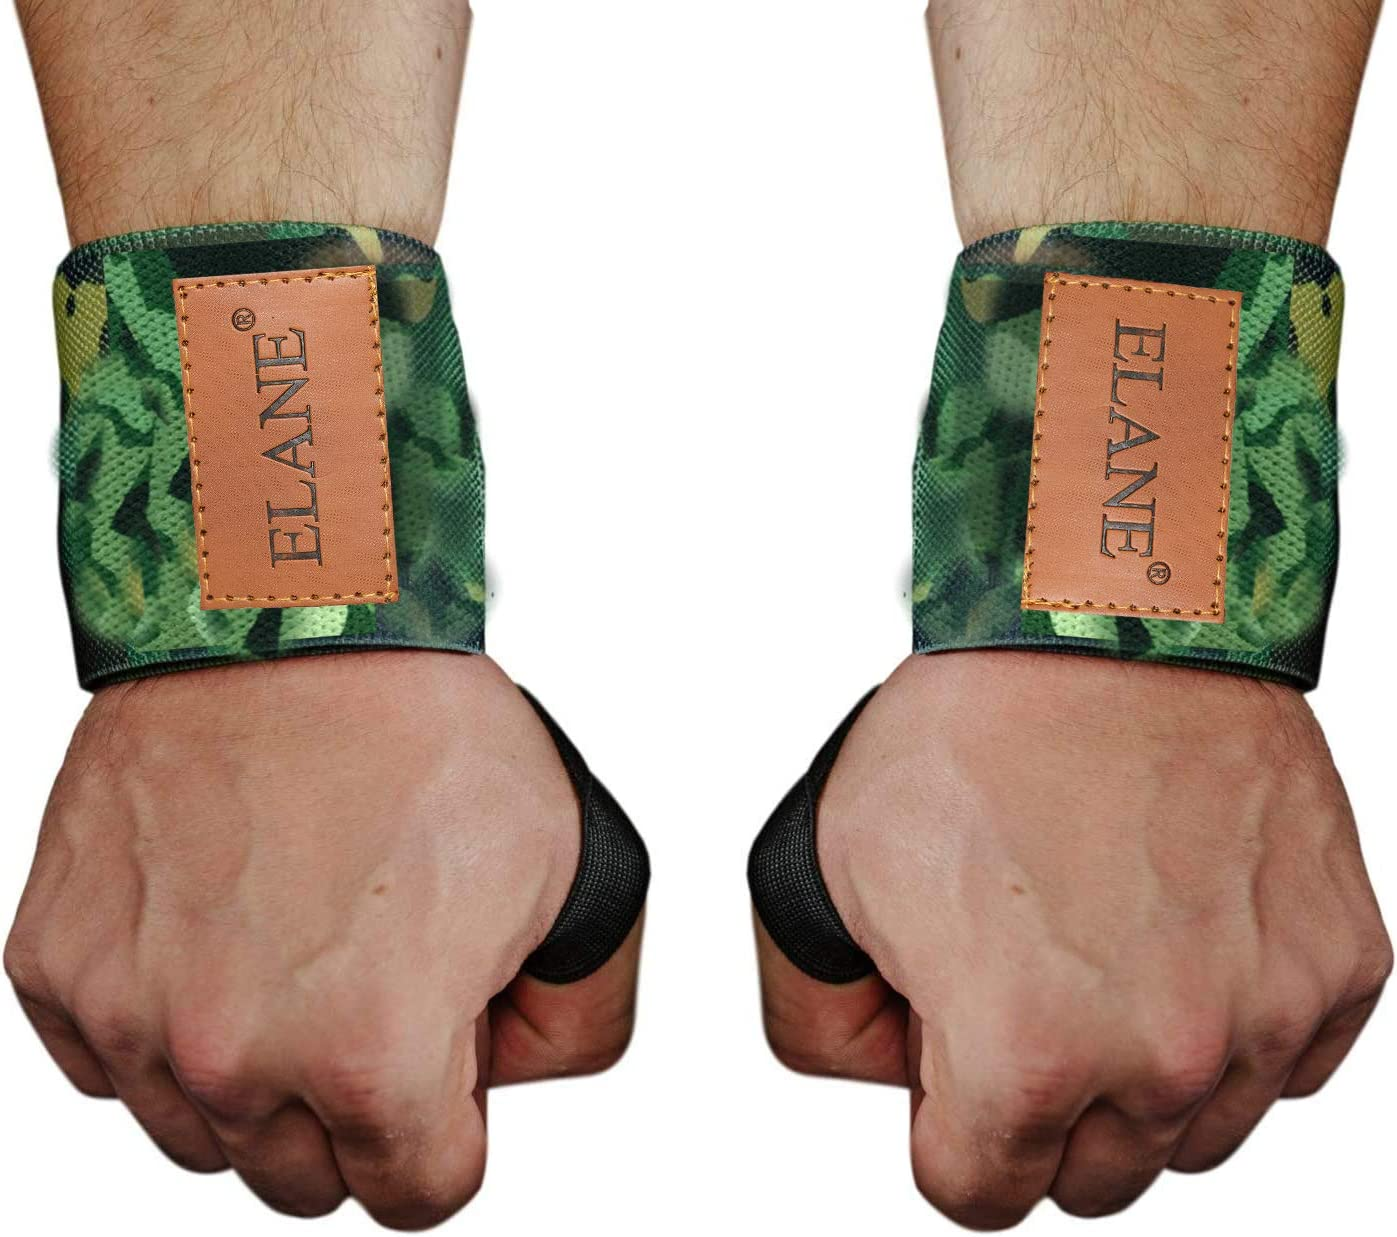 ELANE 2PCS/Pair Wrist Straps Support Braces Wraps for Powerlifting, Bodybuilding, Weight Lifting, Strength Training, Sports, One Size fits All Men& Women (Left and Right) (Camouflage Green) : Sports & Outdoors